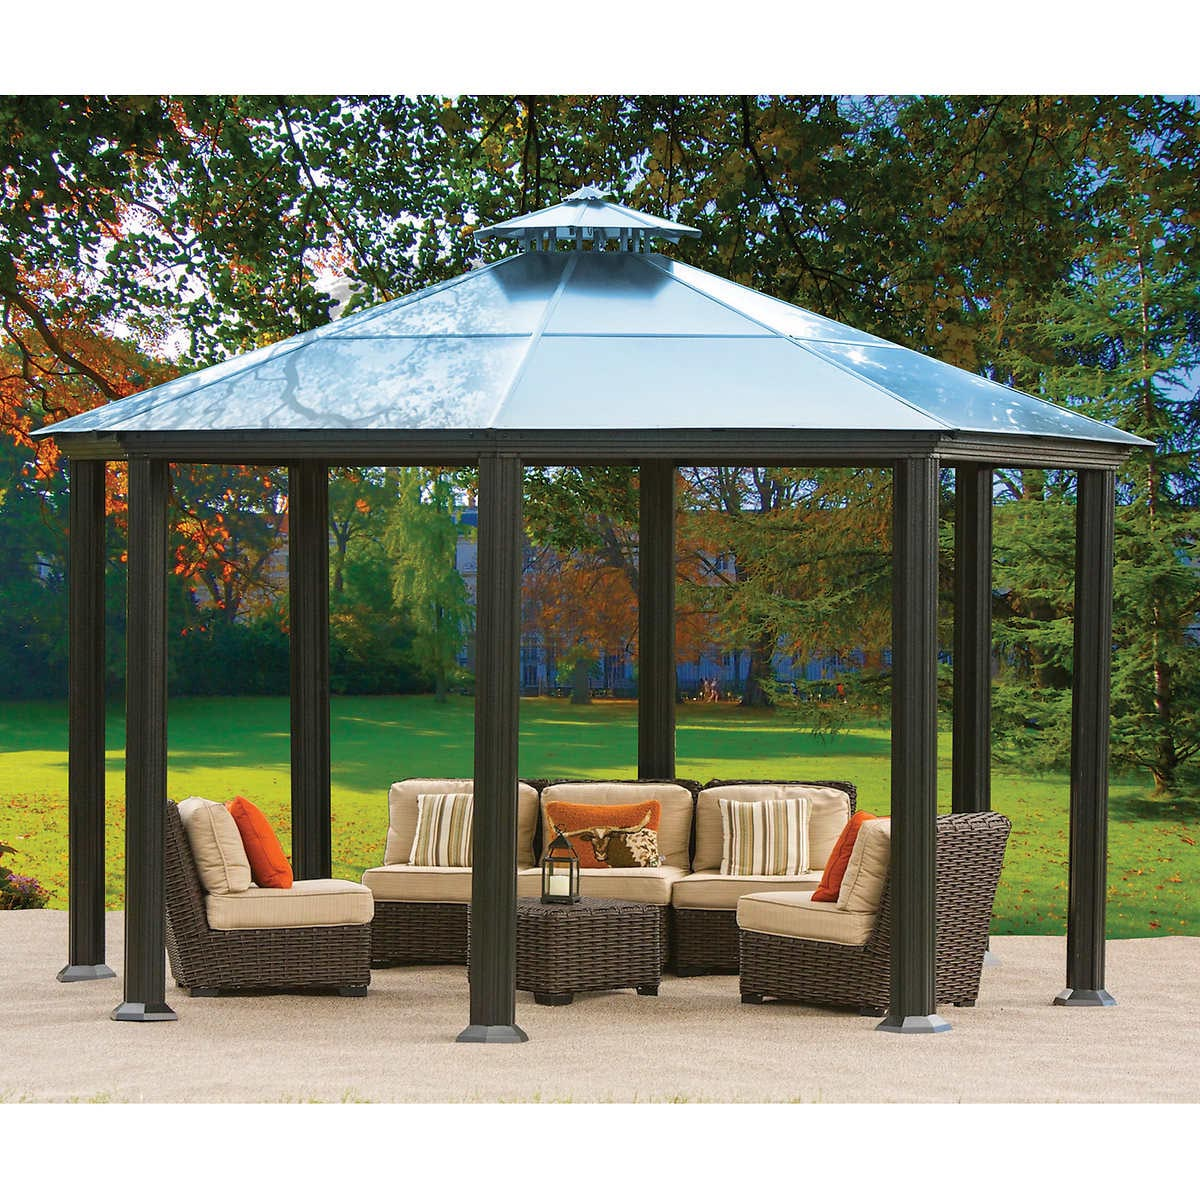 aluminum and steel hardtop gazebo pergola design ideas. Black Bedroom Furniture Sets. Home Design Ideas